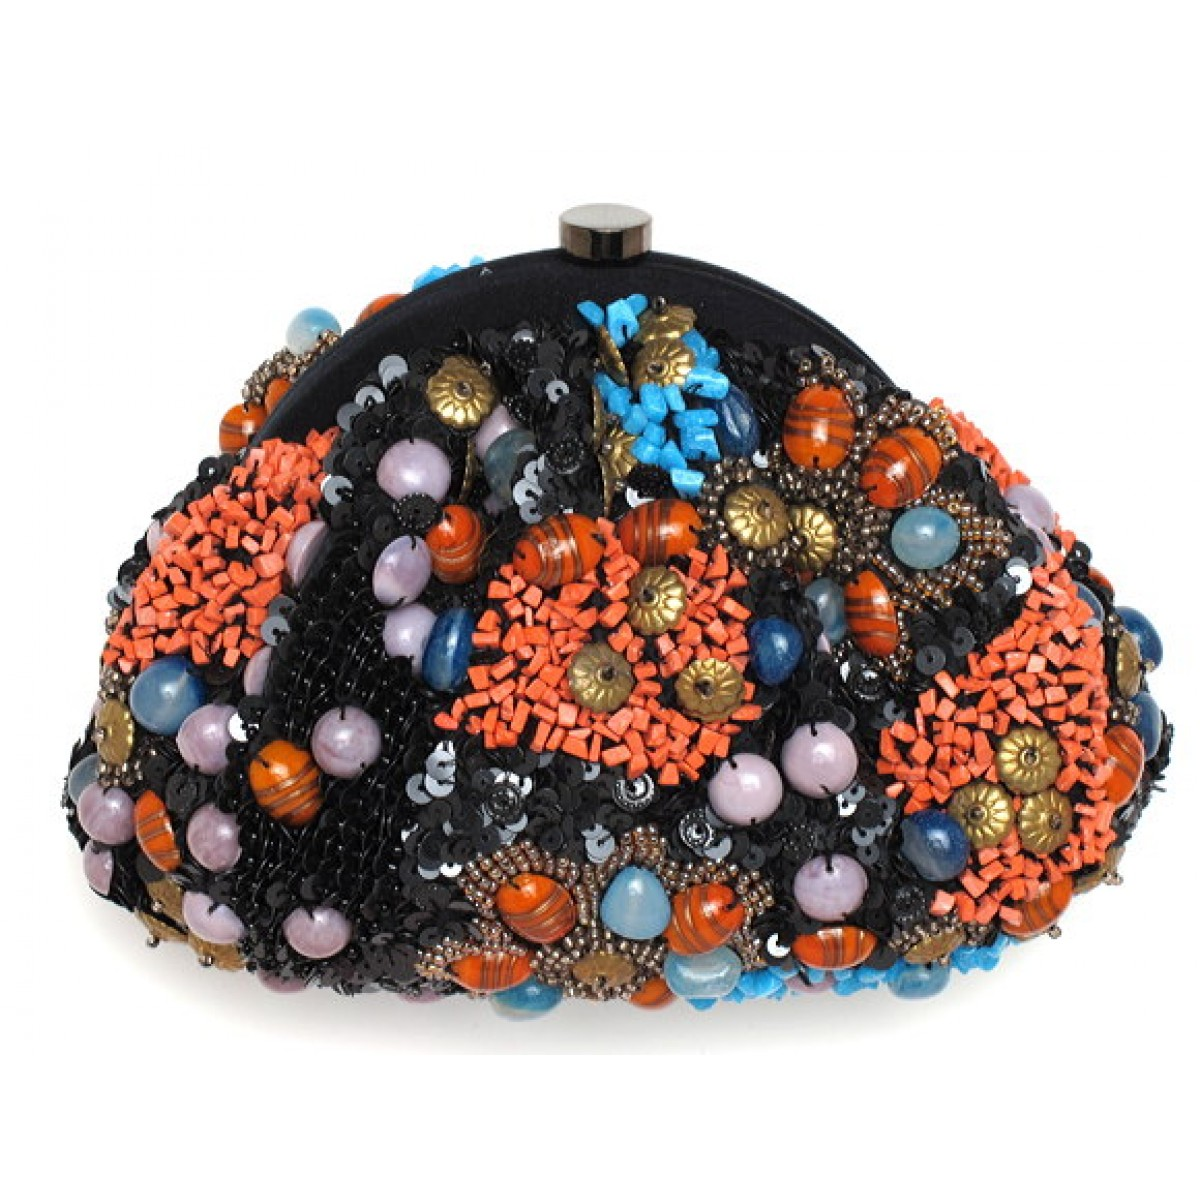 Coral & Turquoise Stone Framed Pouch